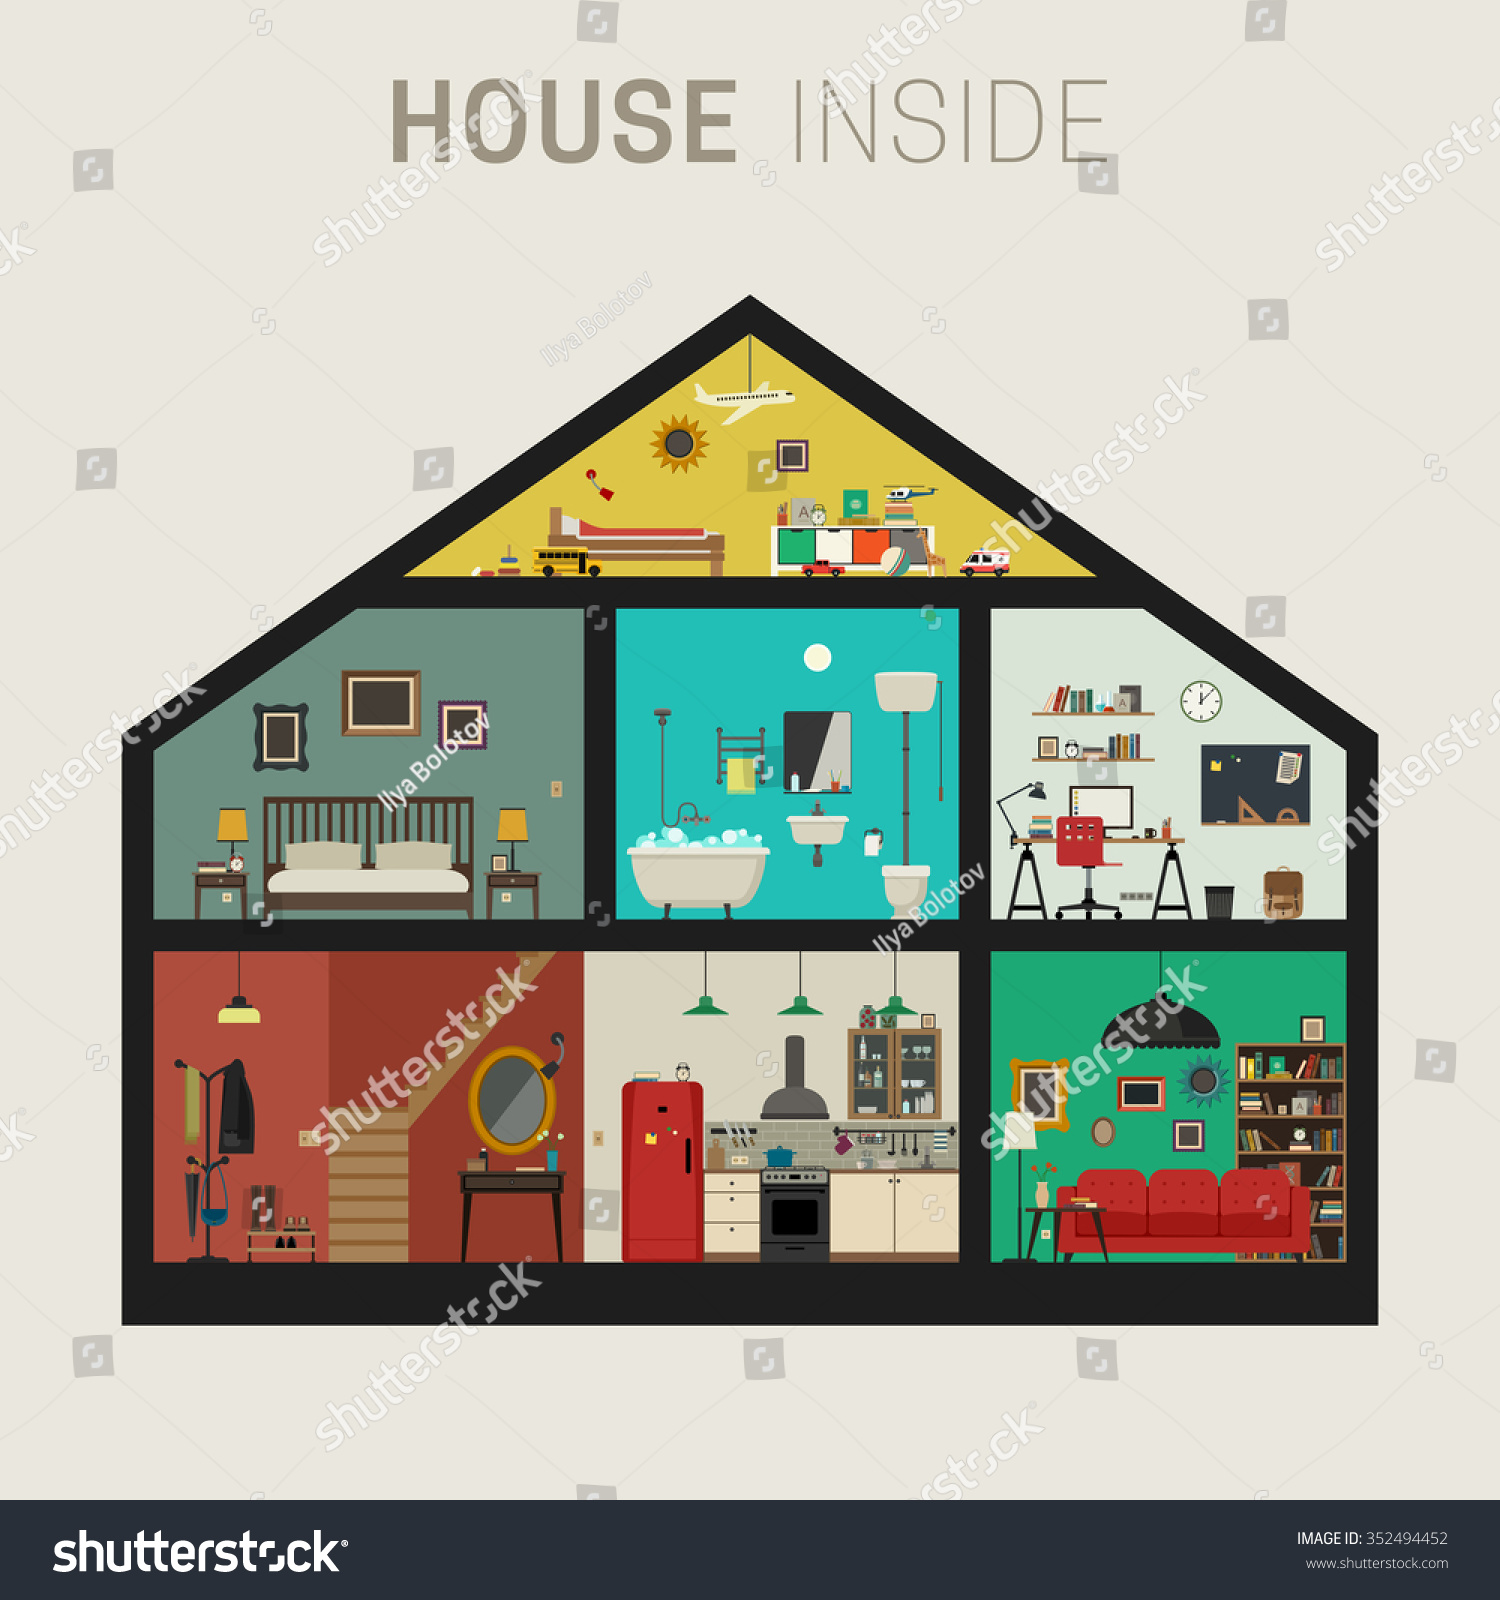 House inside interior vector flat house stock vector for House inside images